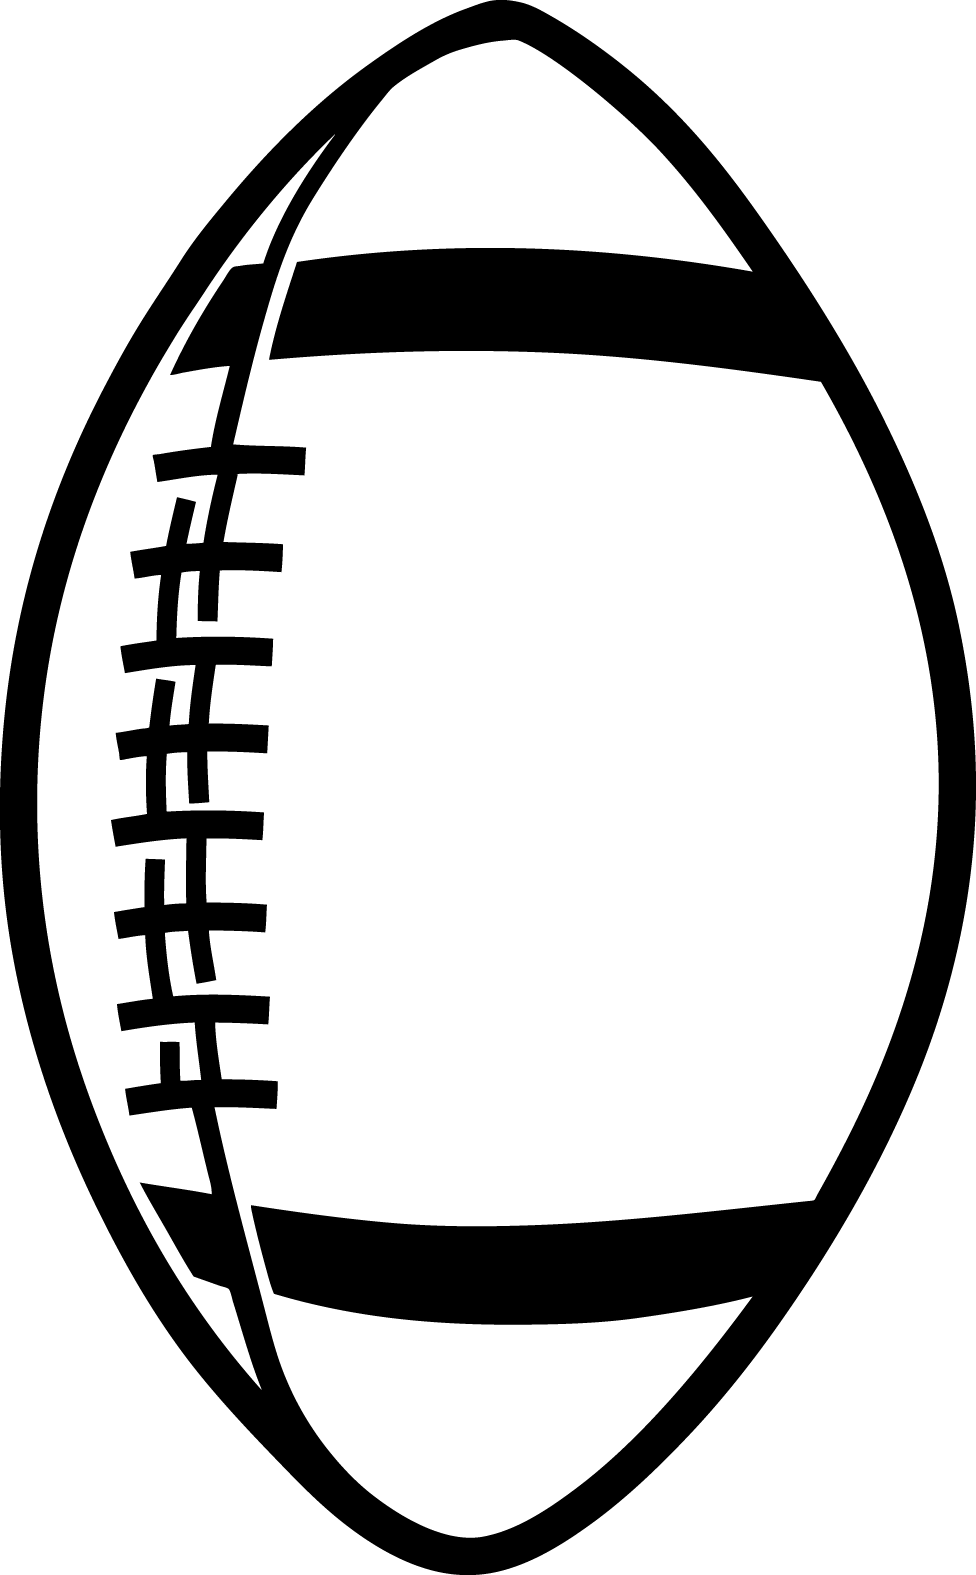 image regarding Free Football Stencil Printable named Dragonfly Determine Clipart Clipart Panda - No cost Clipart